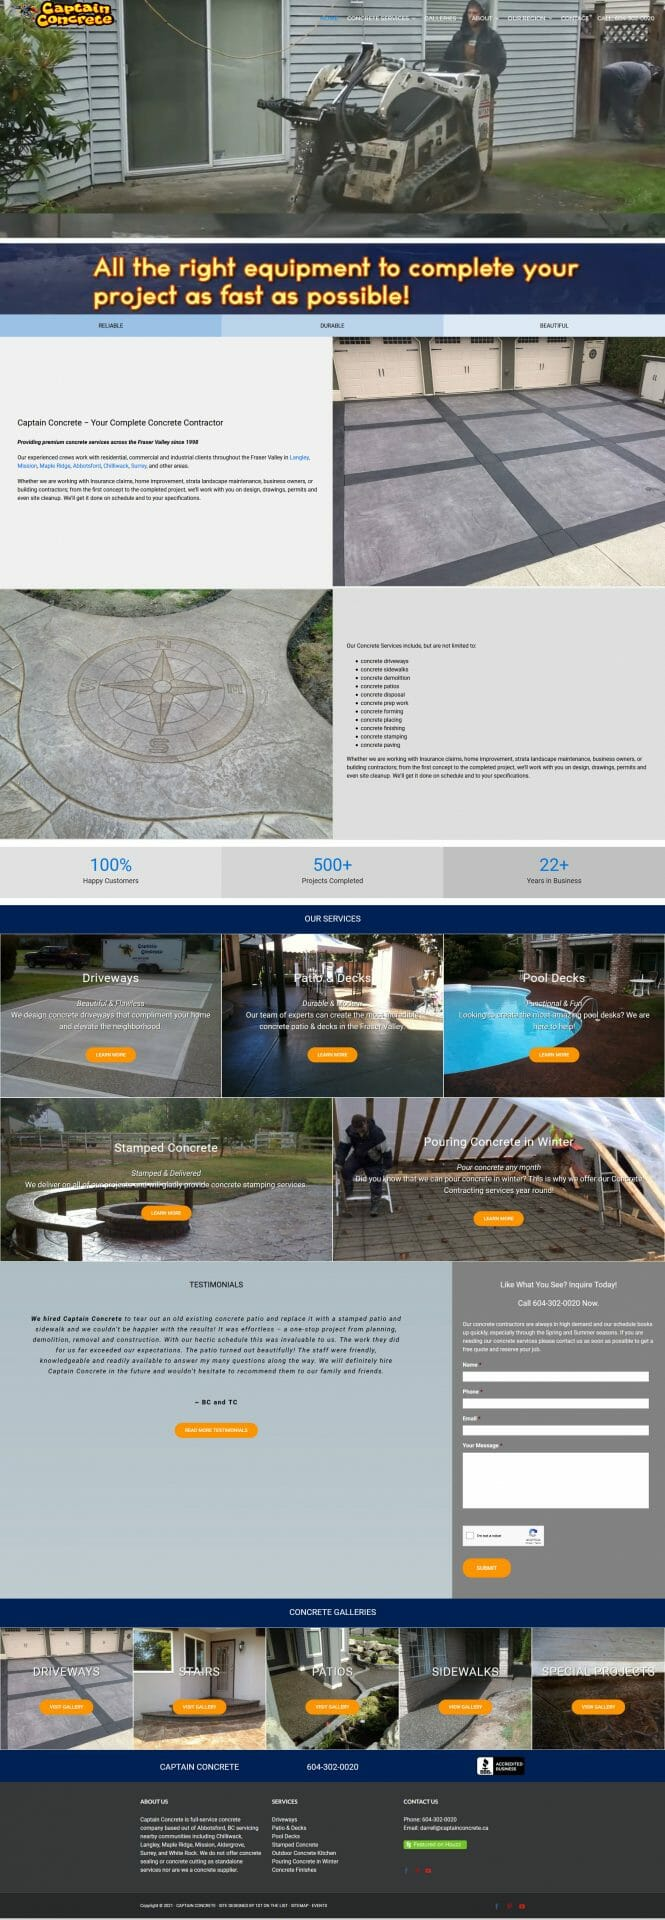 Client examples of stamped concrete